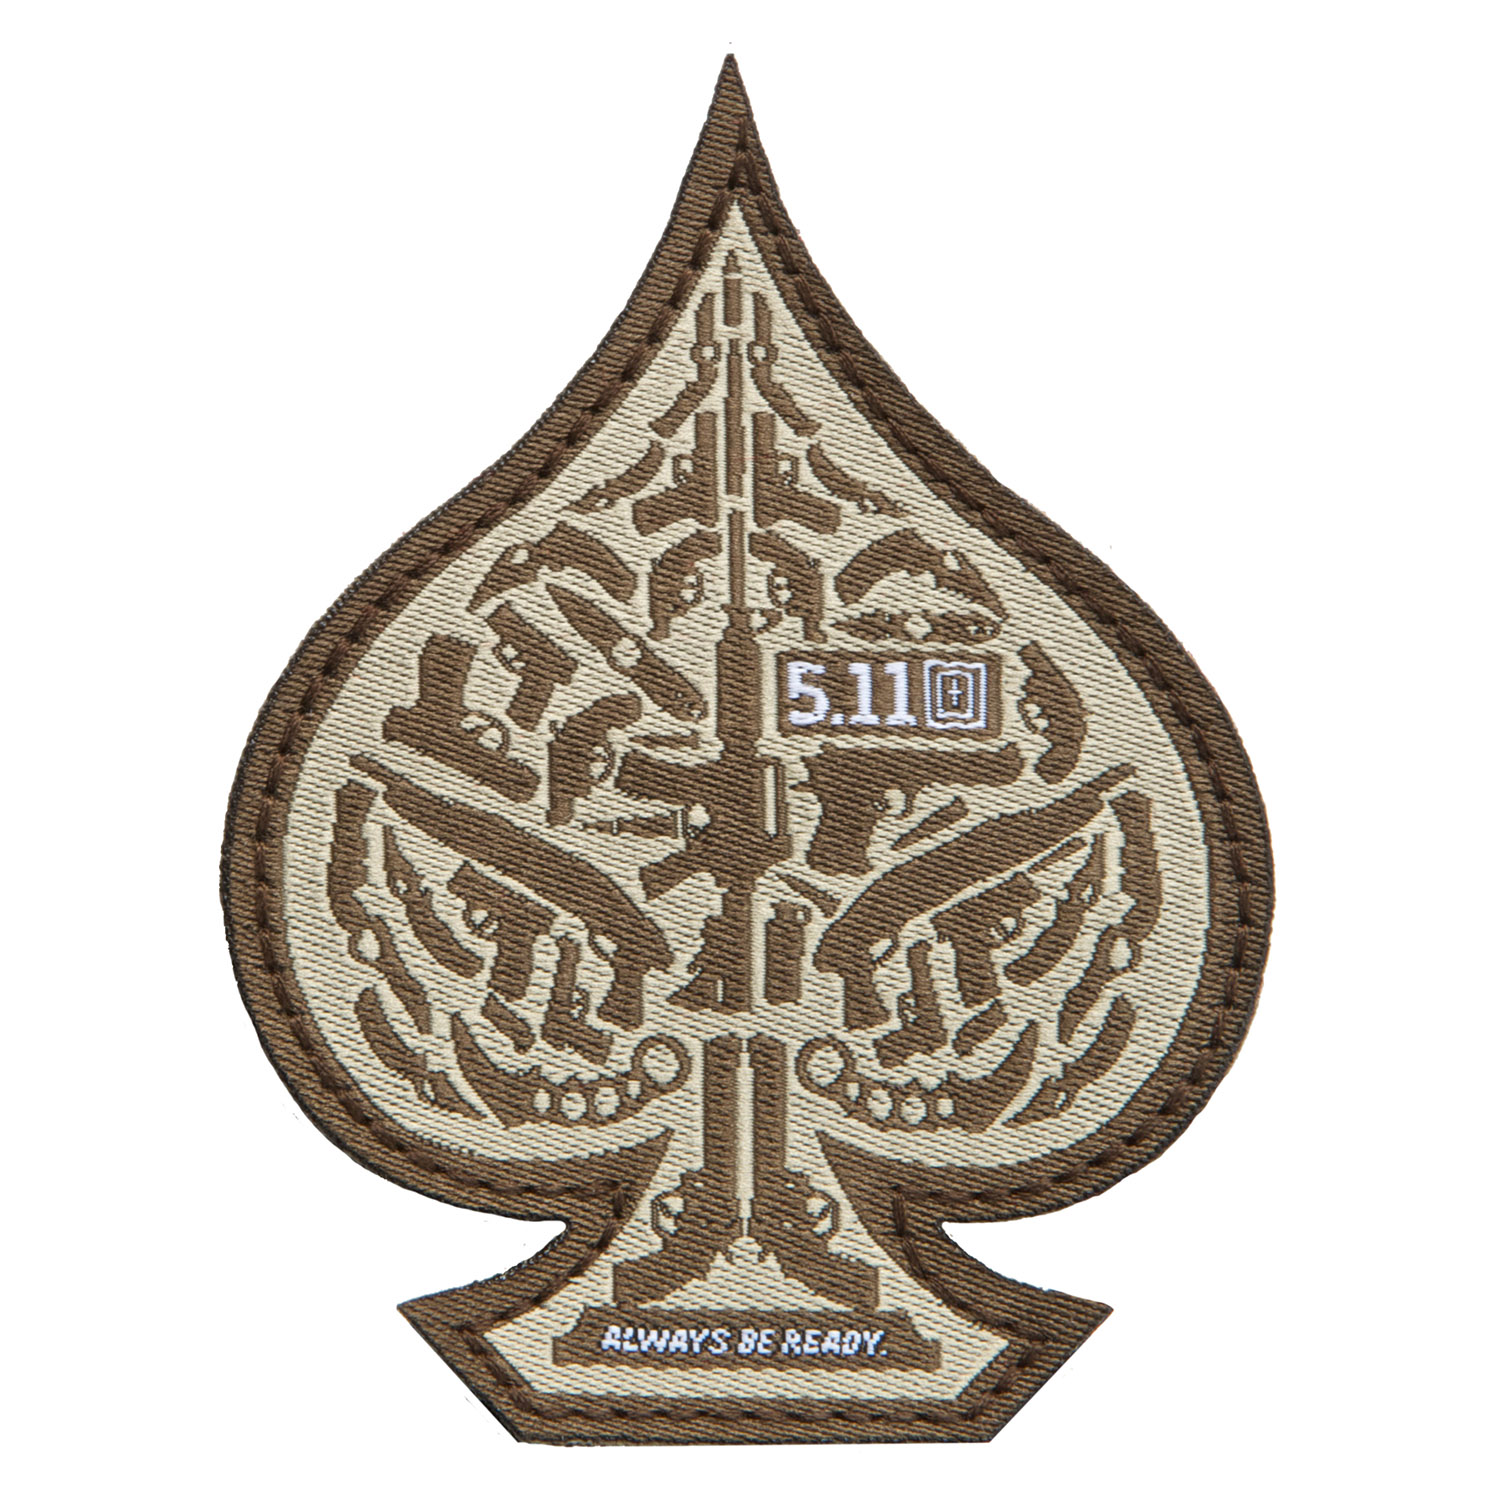 5.11 Tactical Spade Morale Patch